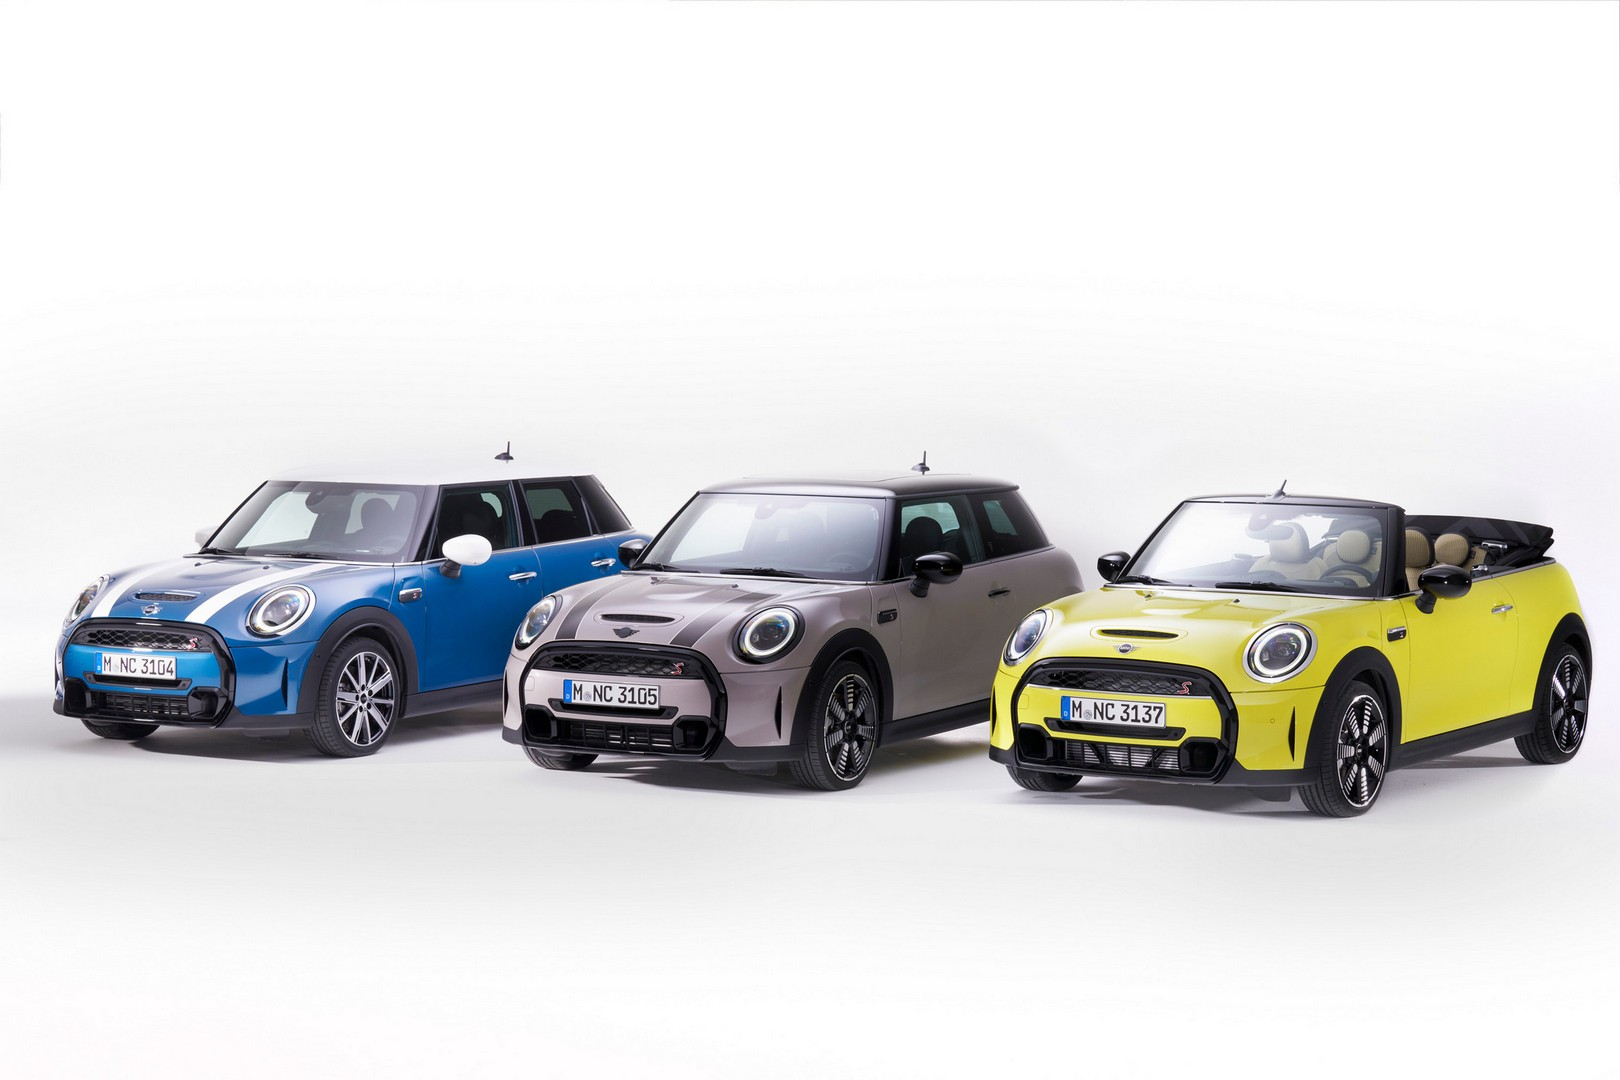 Mini Hatch, Convertible, Electric: Prices, Specs, Features